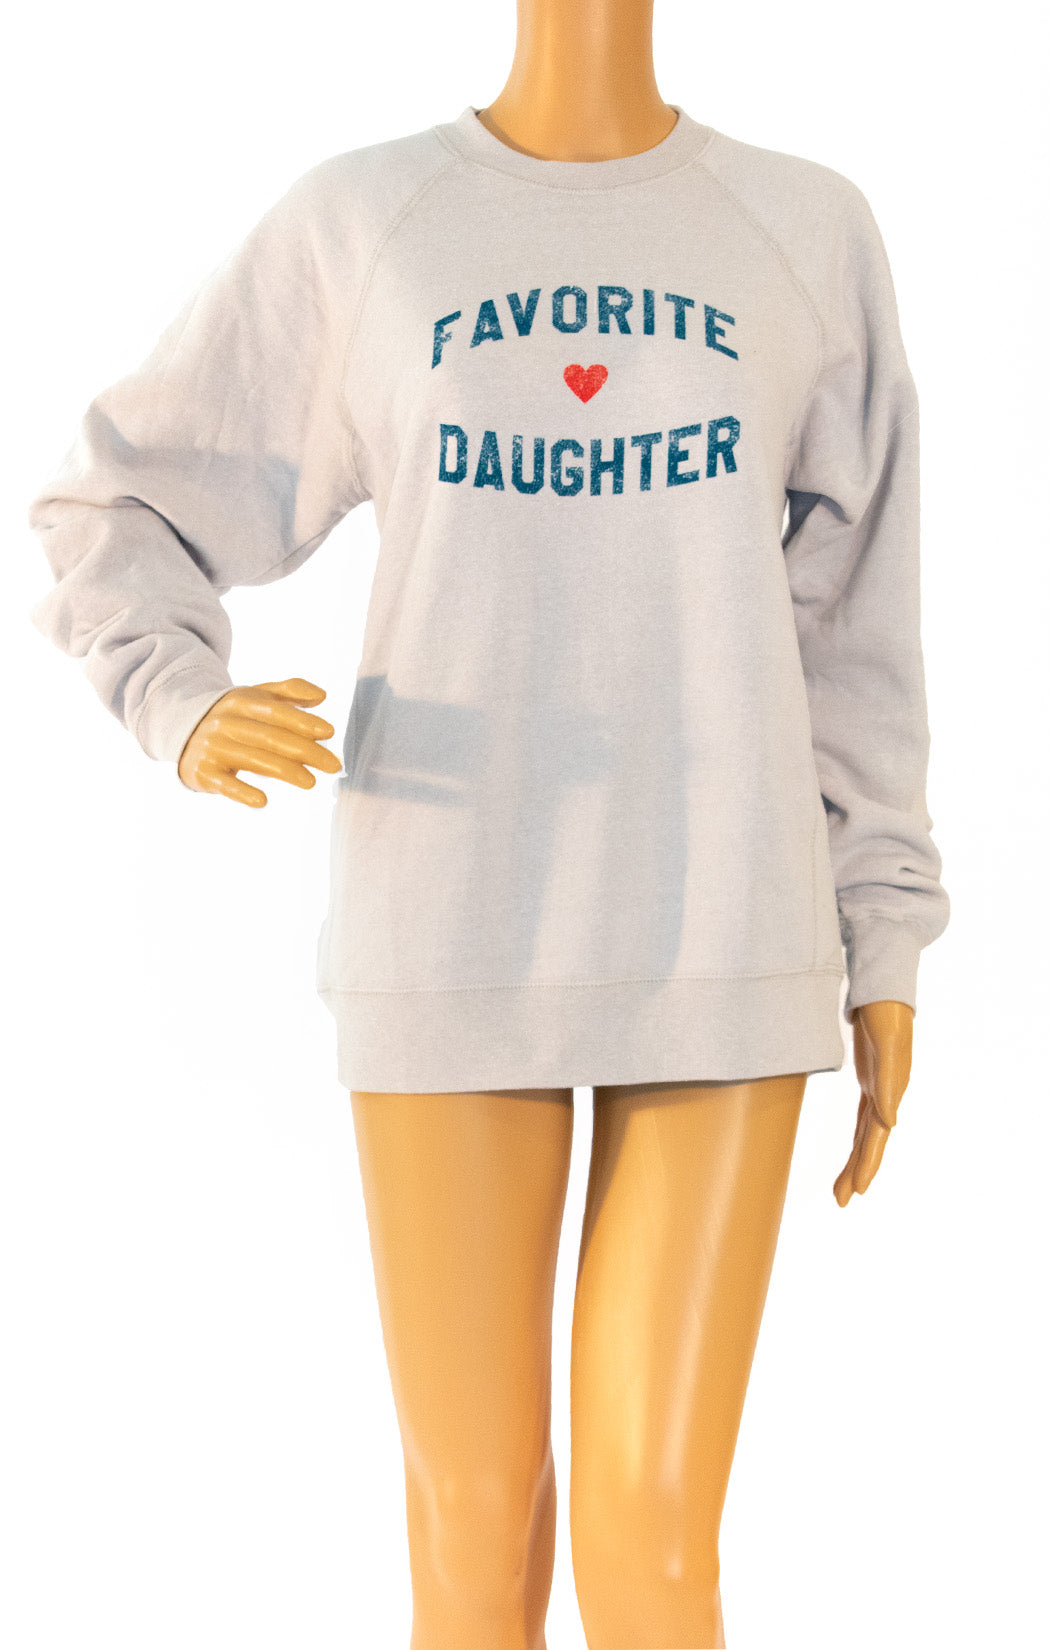 Front view of ERIN & SARA Sweatshirt Size: Small